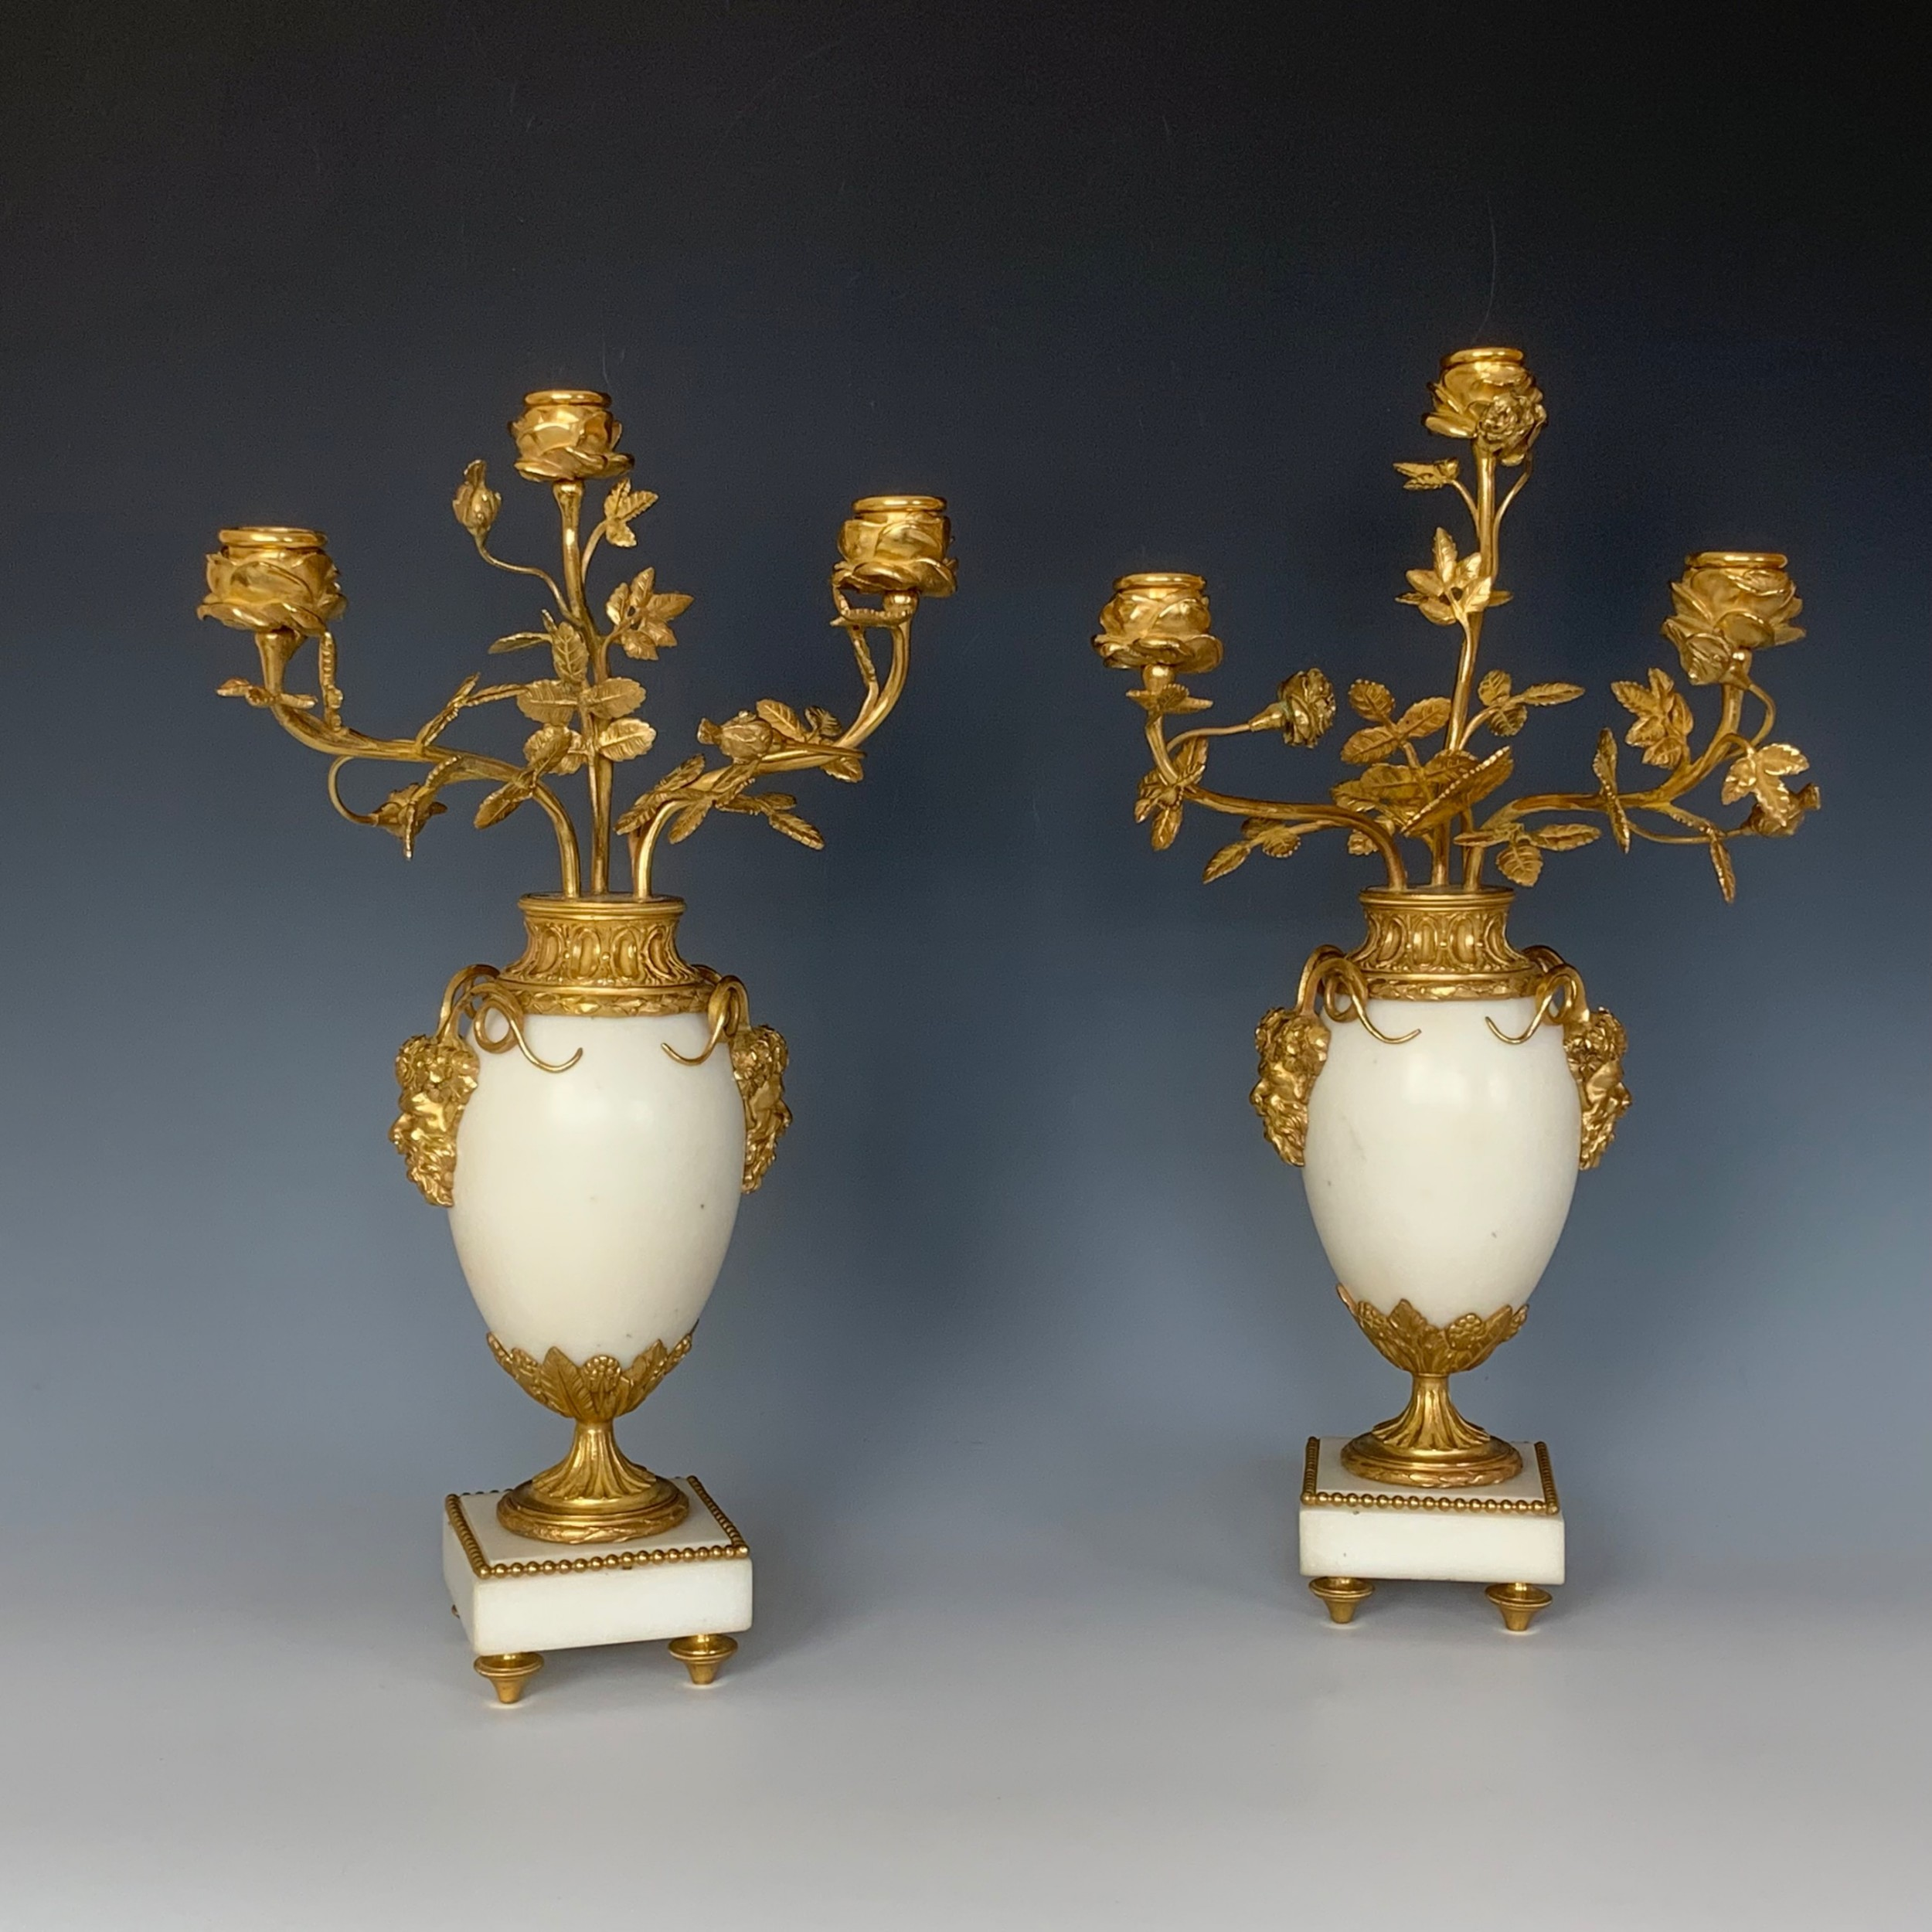 a pair of 19th century french gilt bronze mounted candelabra in louis xvi style